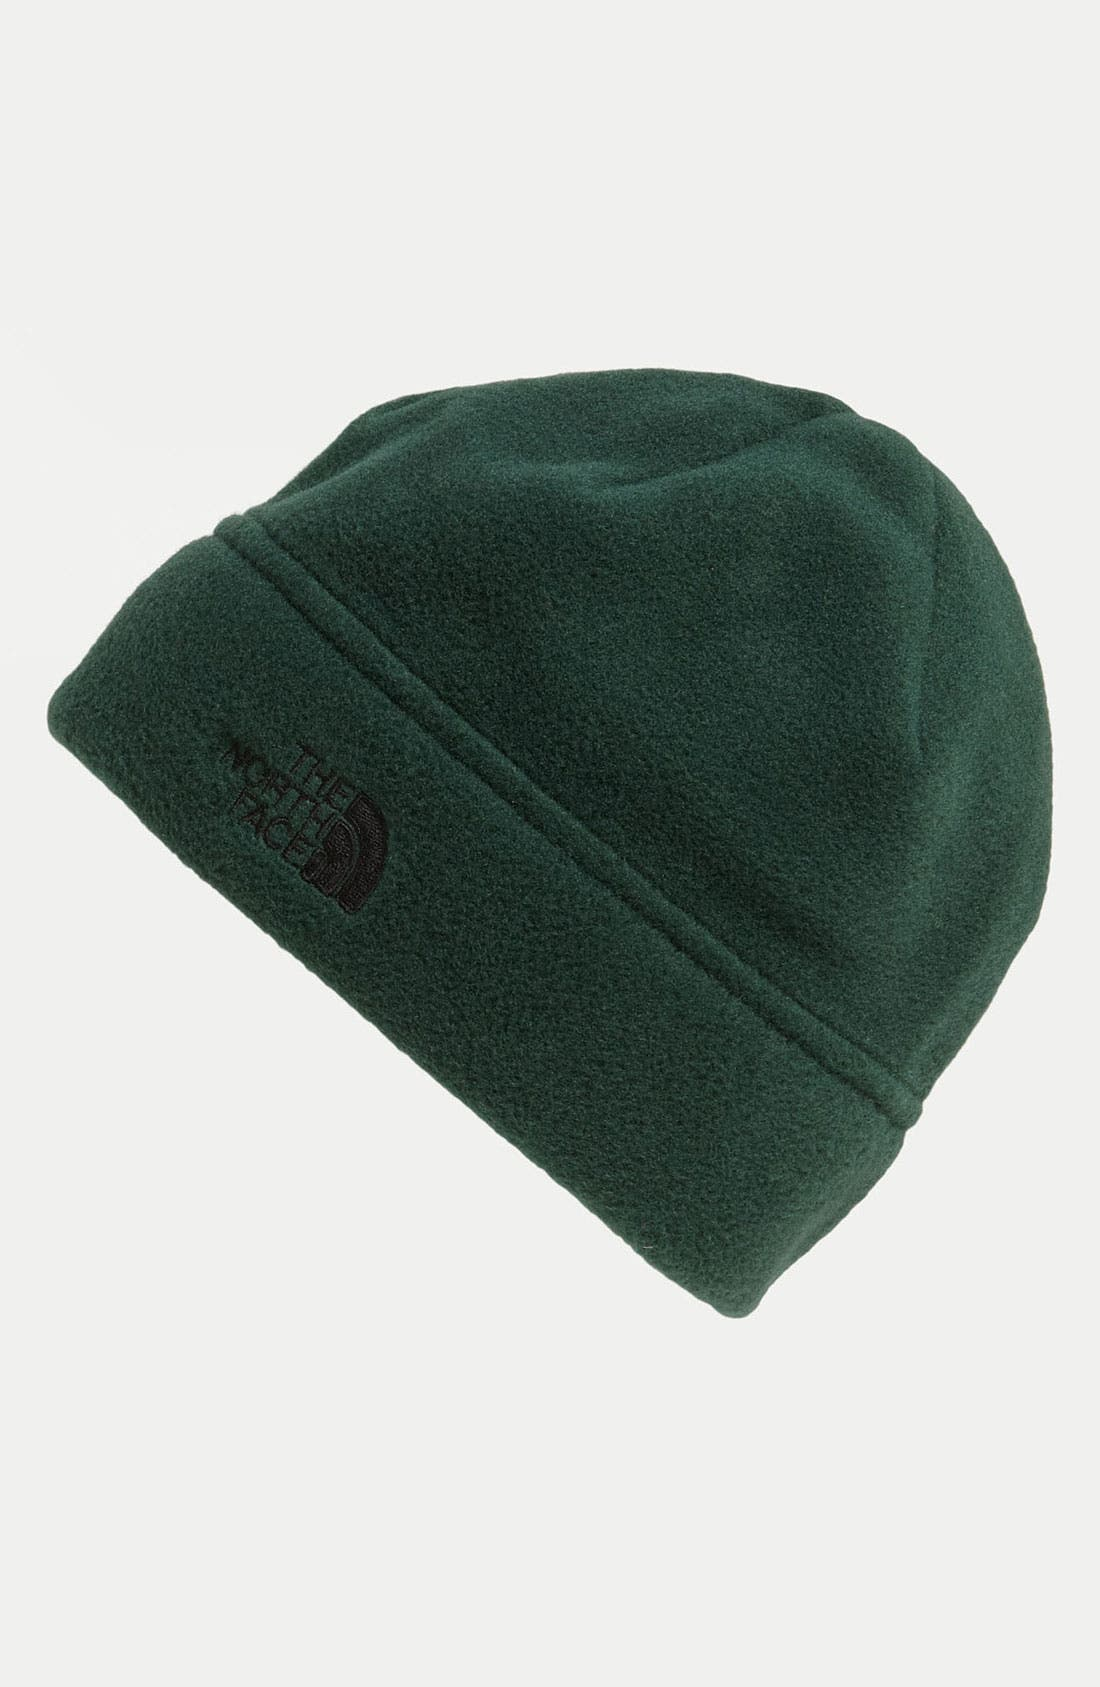 Alternate Image 1 Selected - The North Face 'Flash' Recycled Fleece Beanie